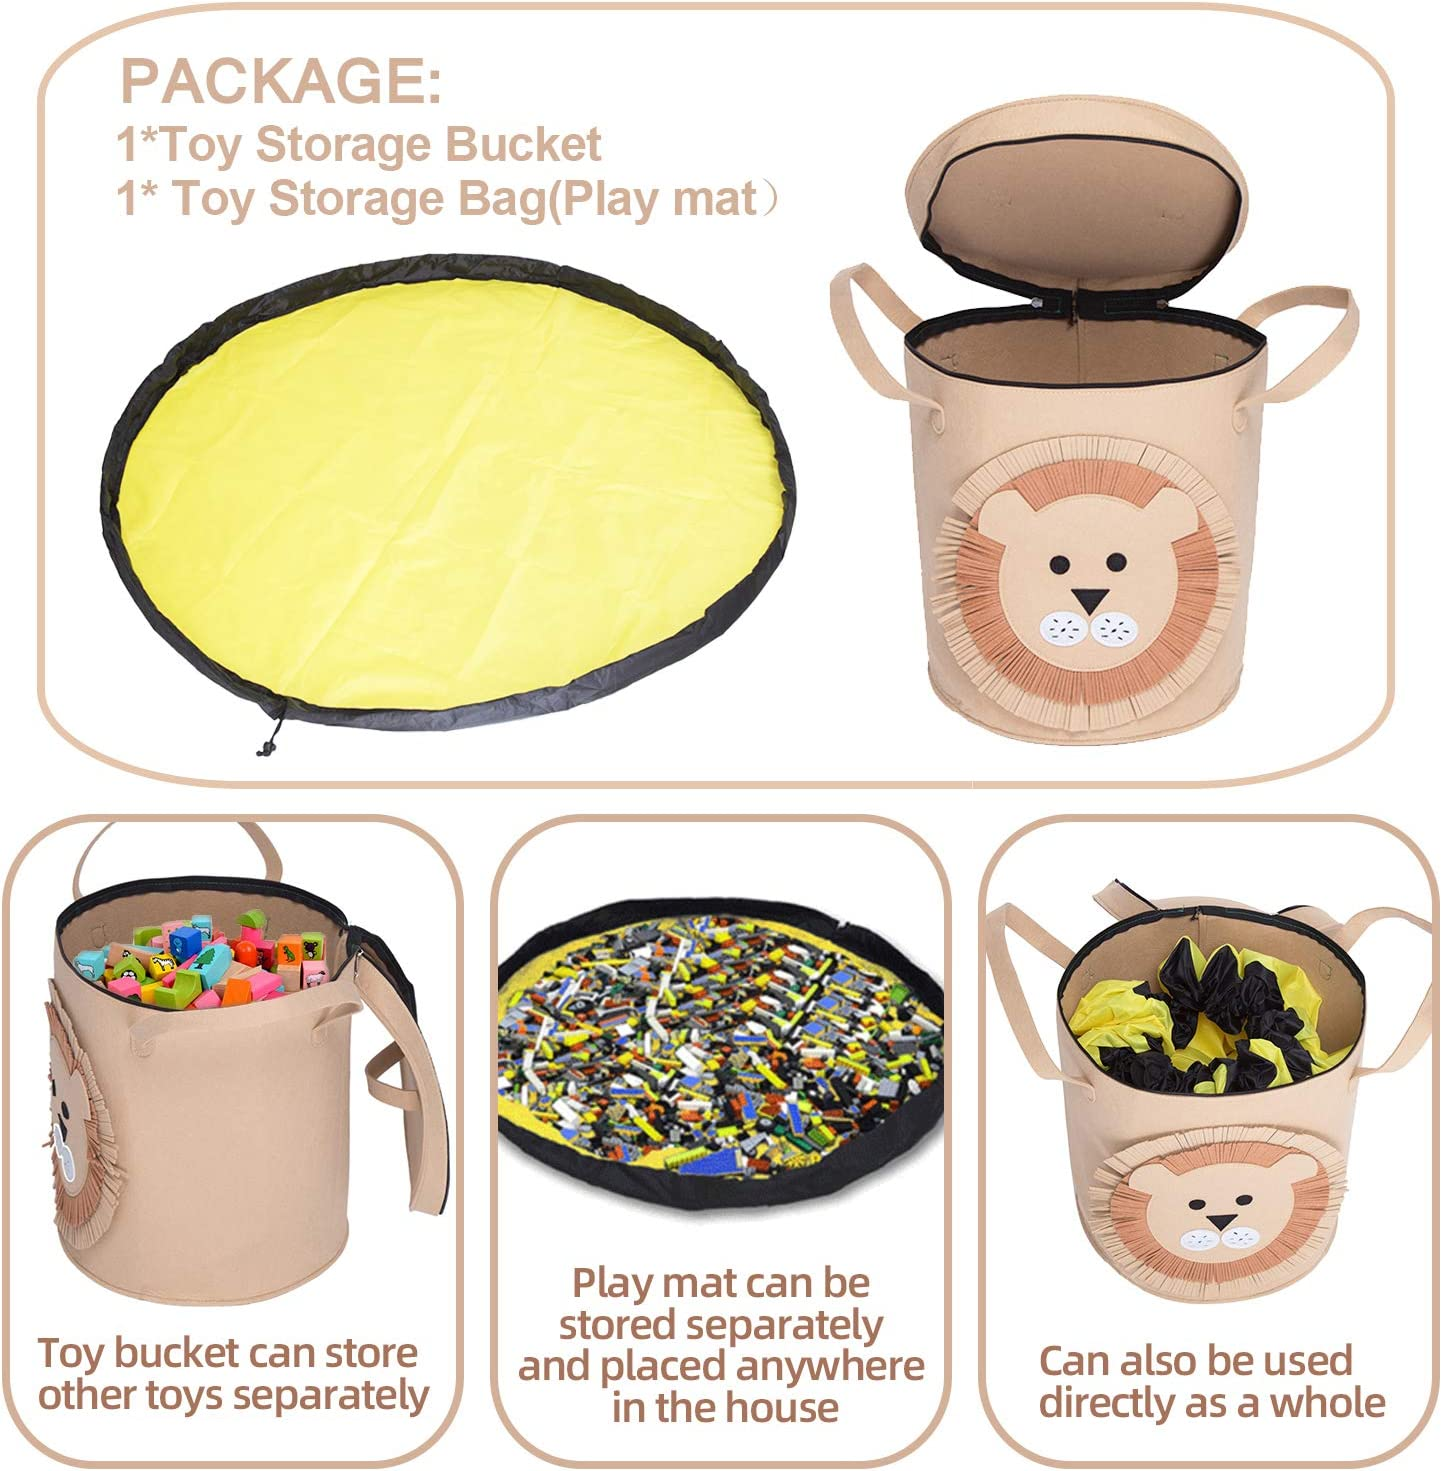 Poemyoued Toy Storage Basket and Play Mat,Collapsible Cartoon Lion Felt Bucket,Outdoor Toy Quick Storage Bag Large Capacity Toy Storage for Kids Room Classroom Toy Organizer